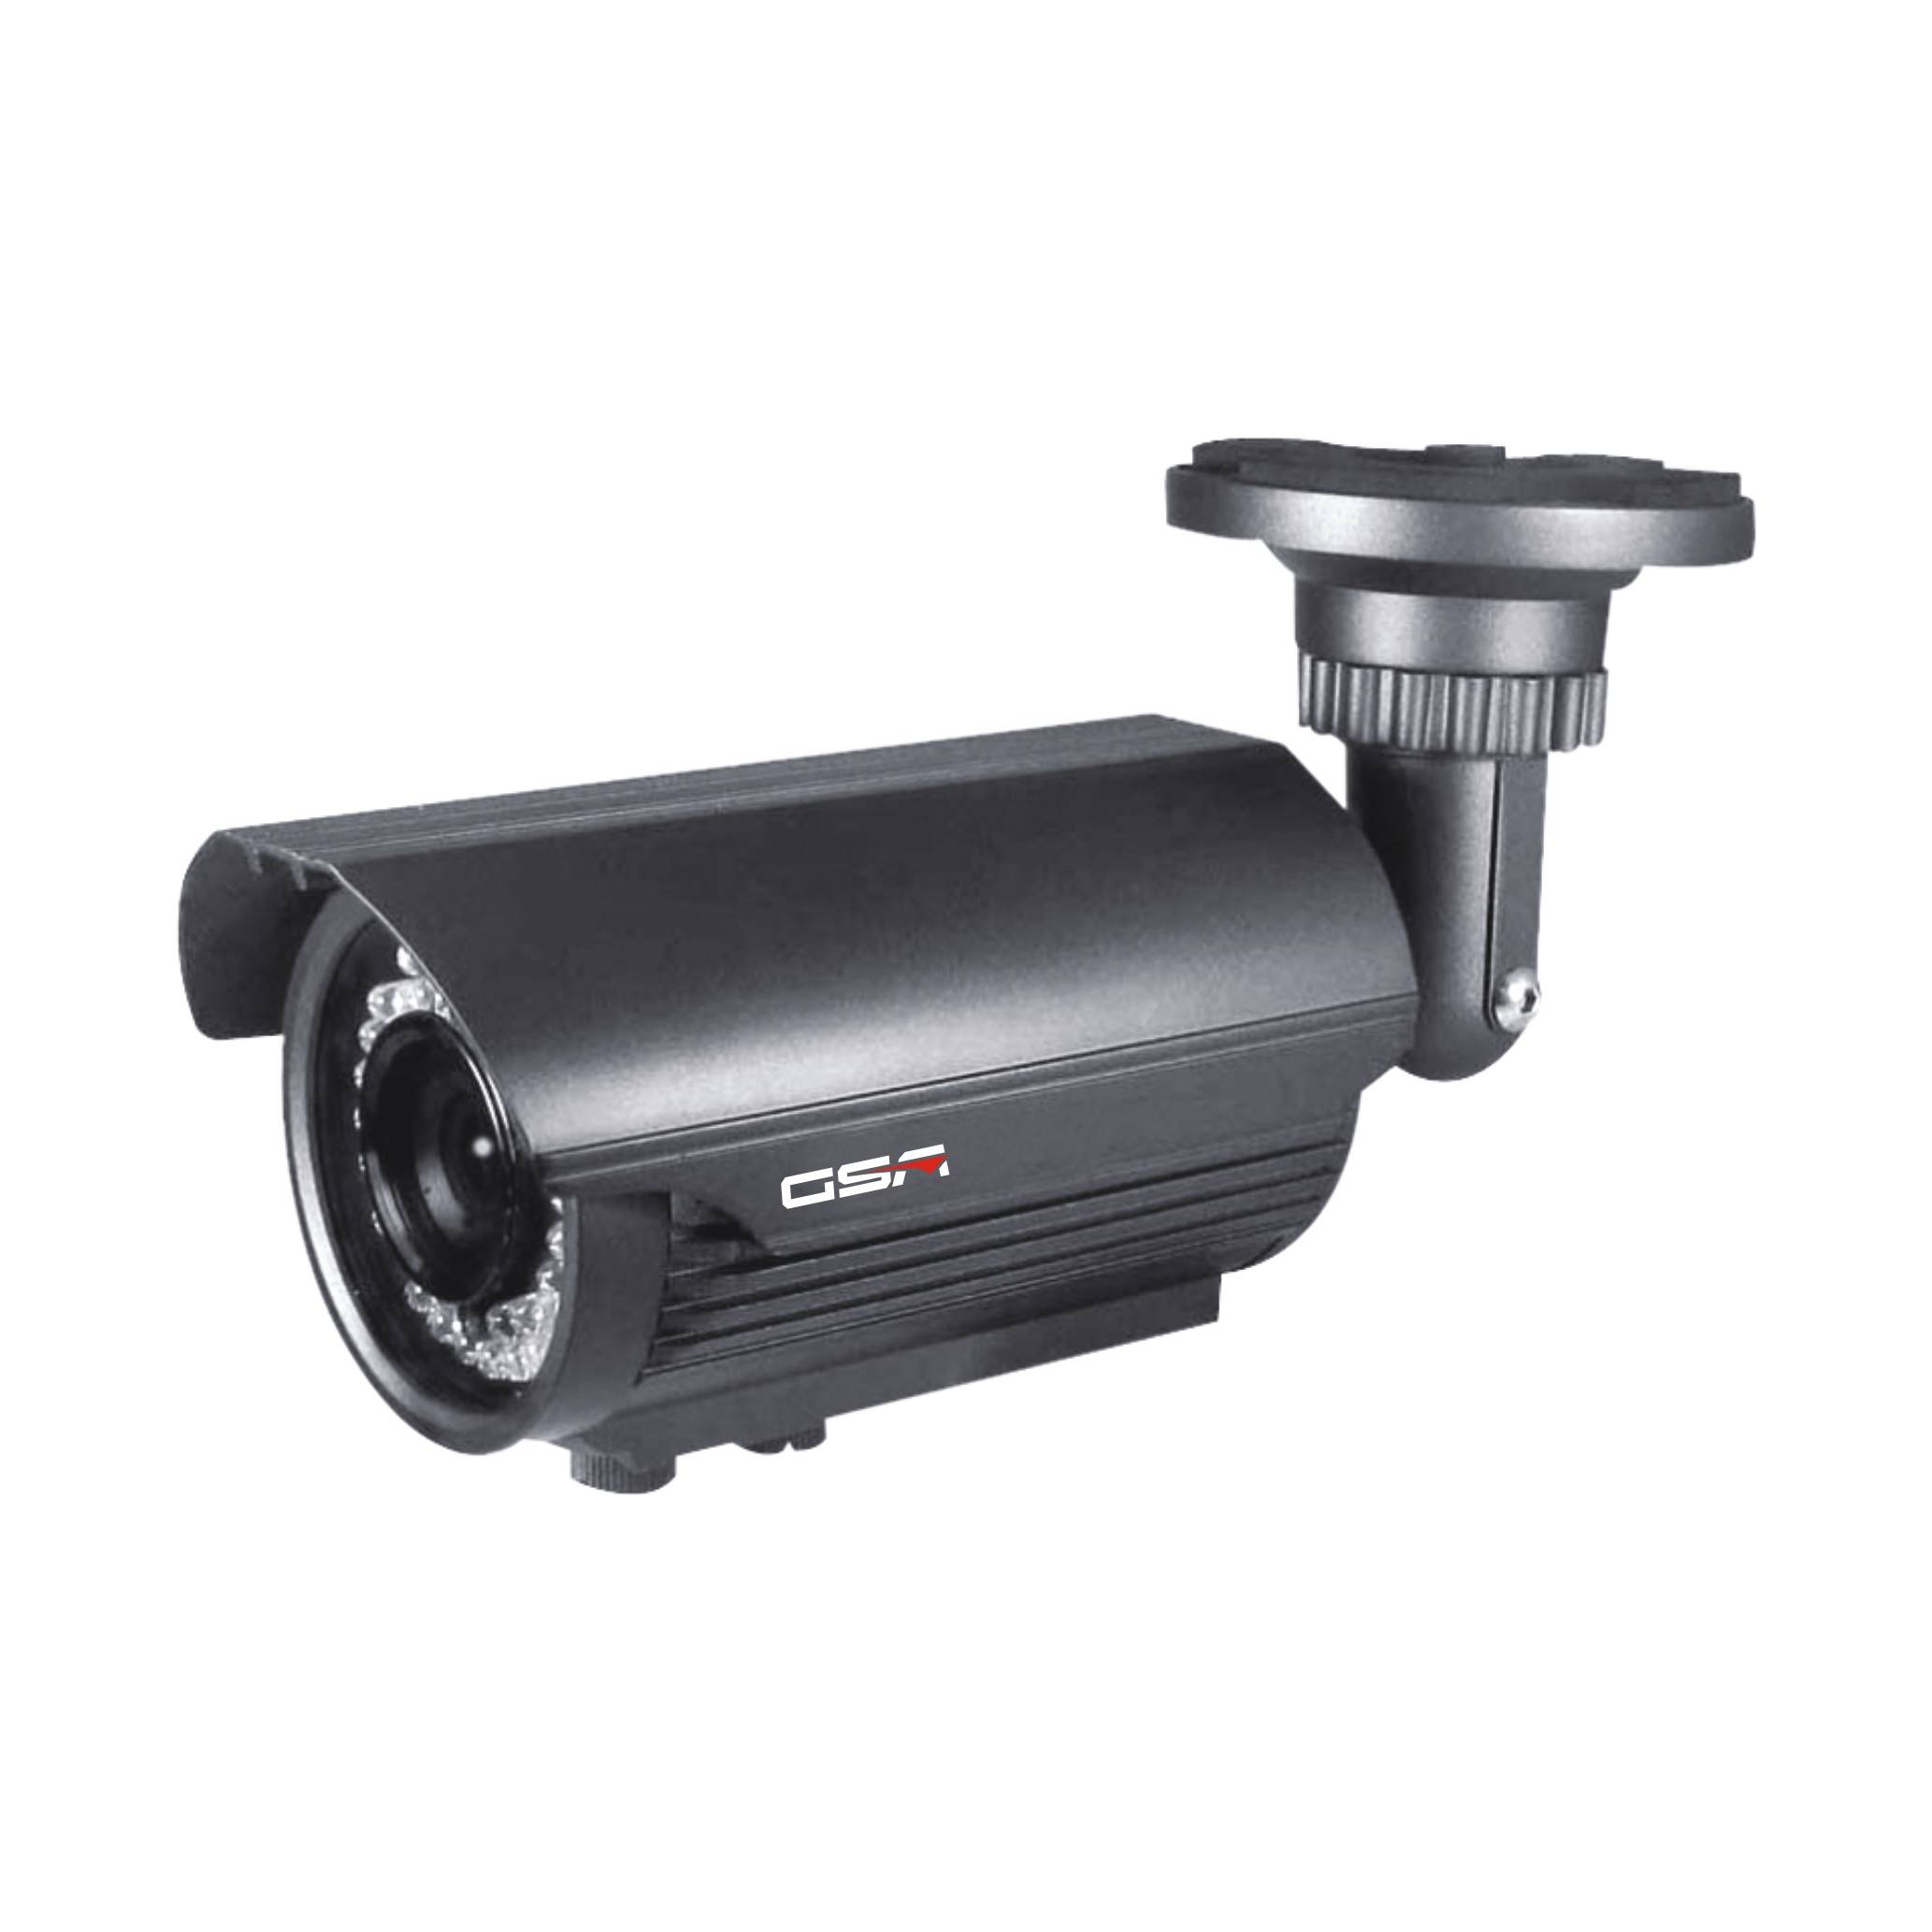 Competitive CCTV Camera China manufacture